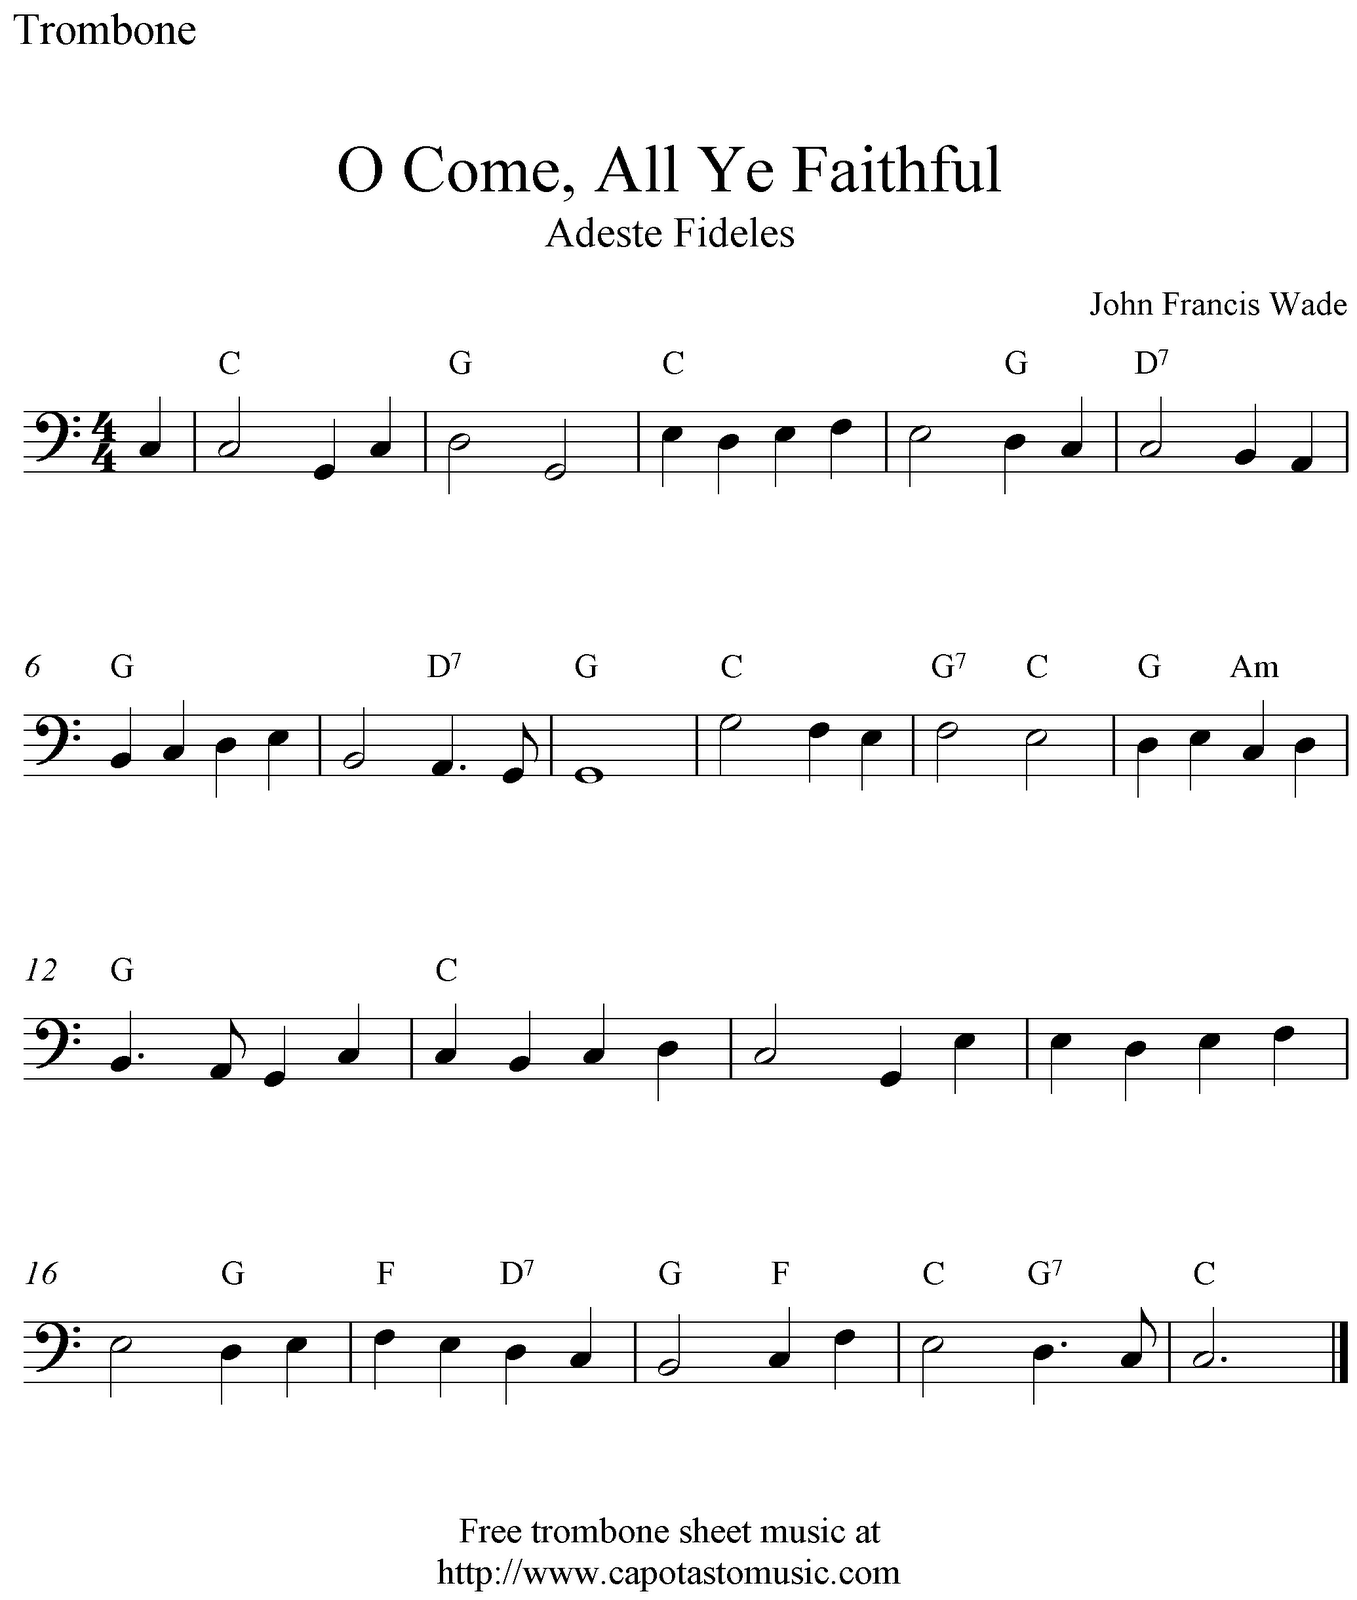 O come all ye faithful simple music for trombone music o come all ye faithful simple music for trombone hexwebz Image collections